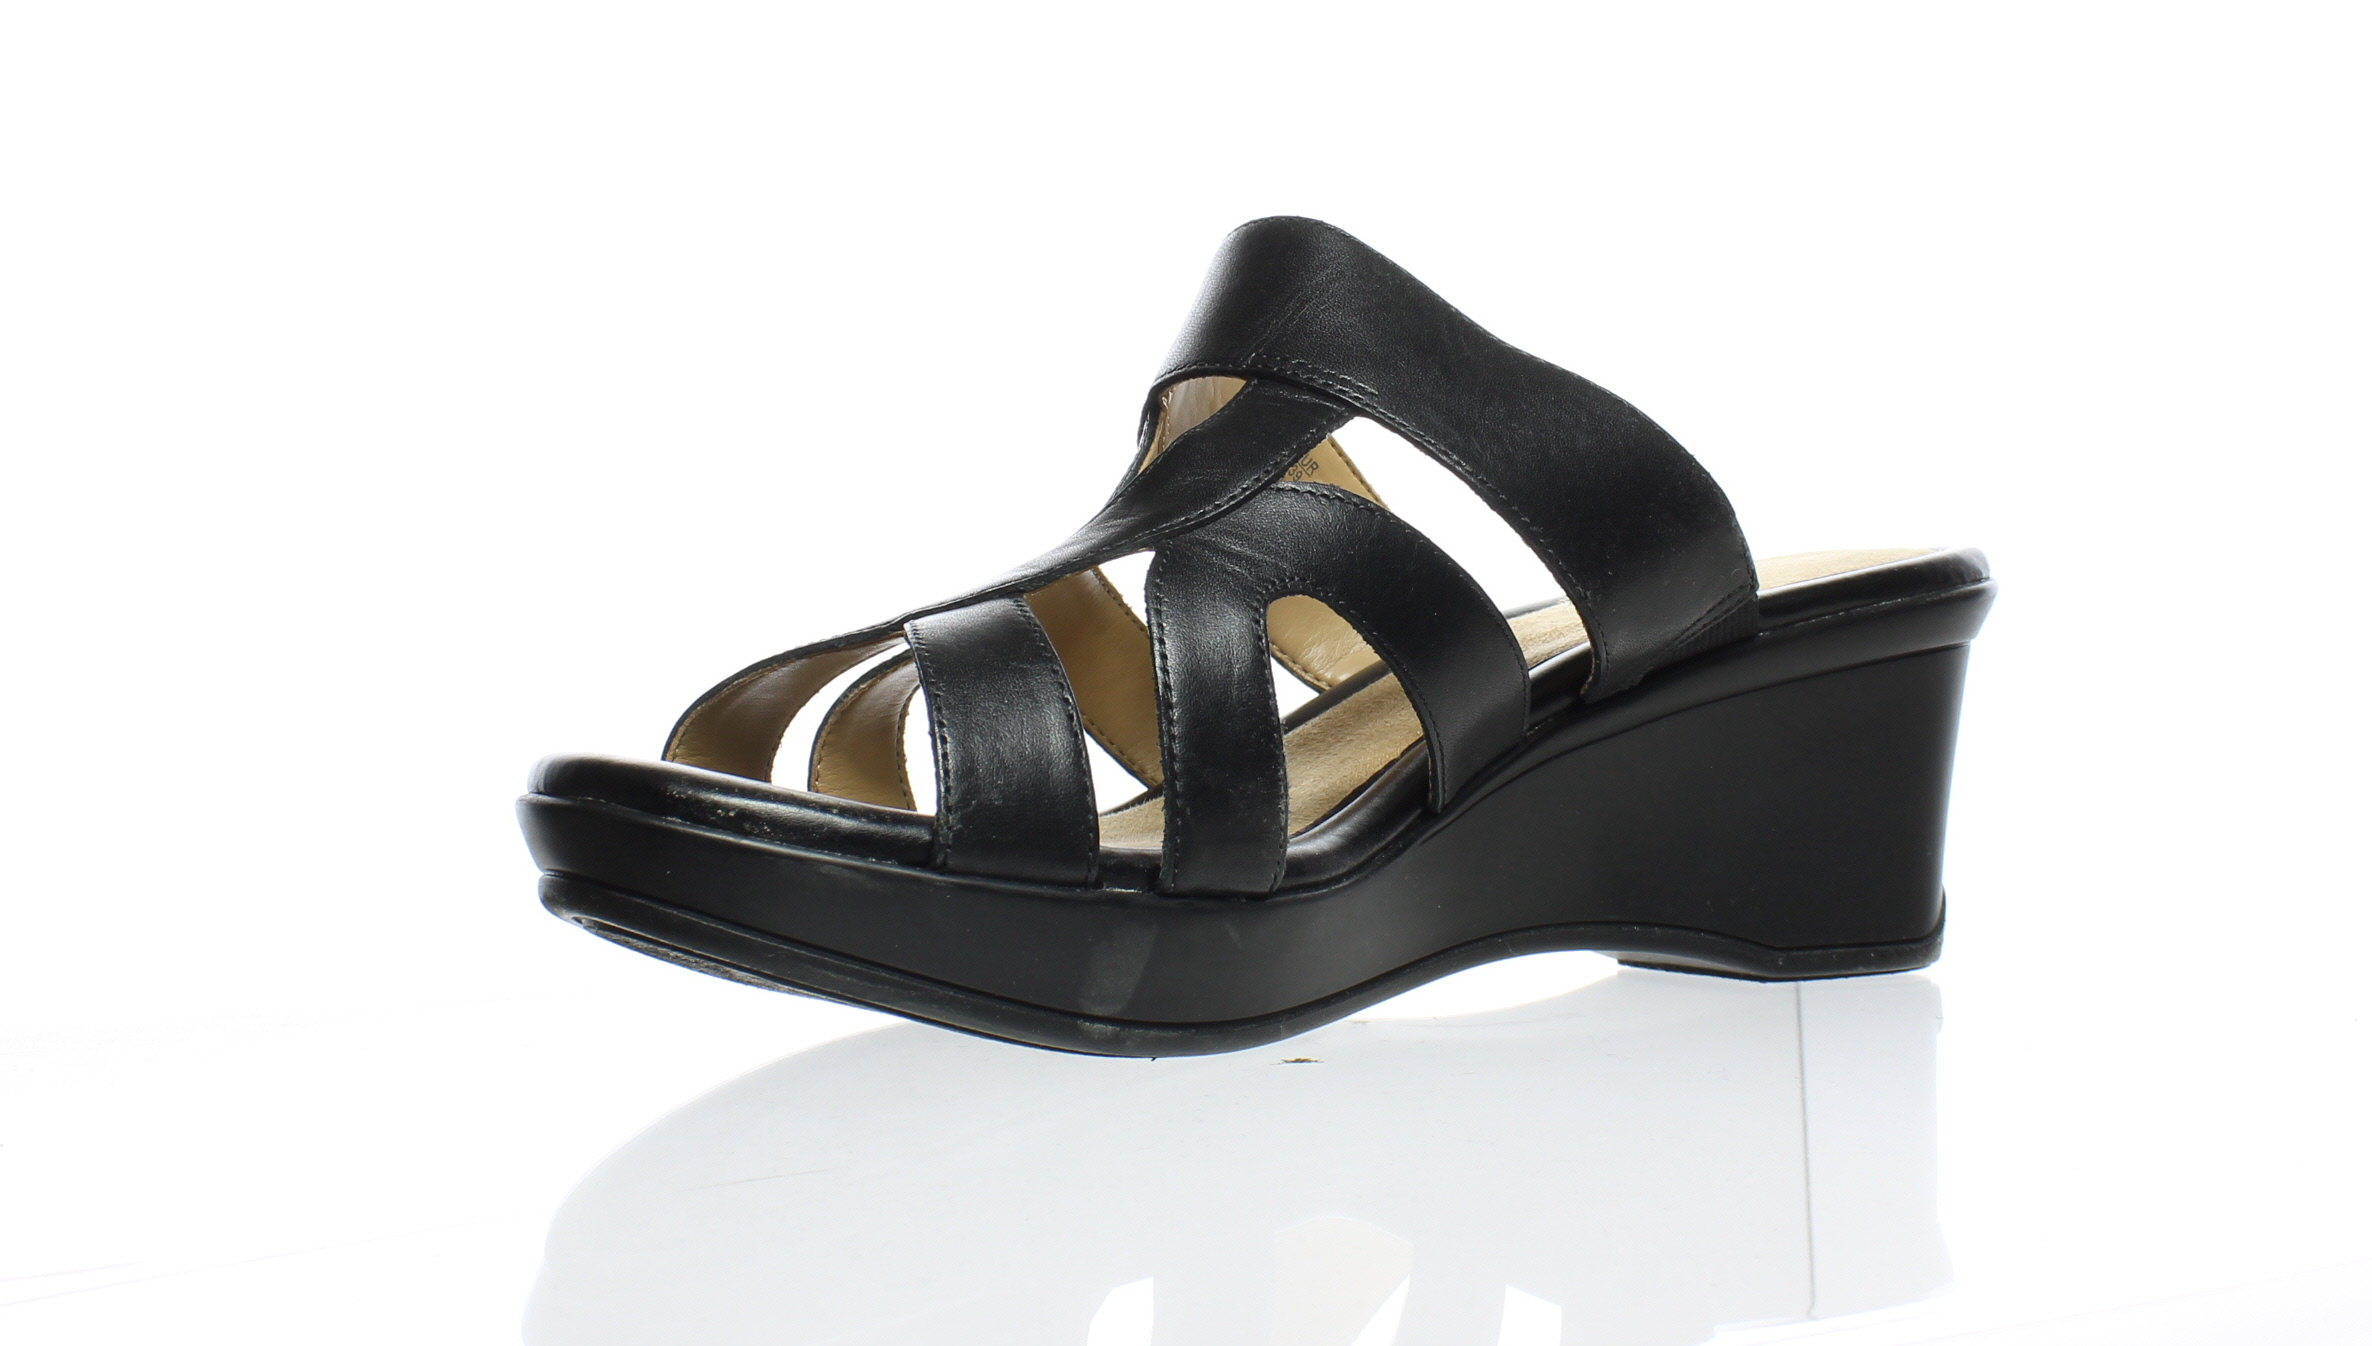 1212aa0c6bff Naturalizer Womens Vanity Black Leather Sandals Size 9 (C